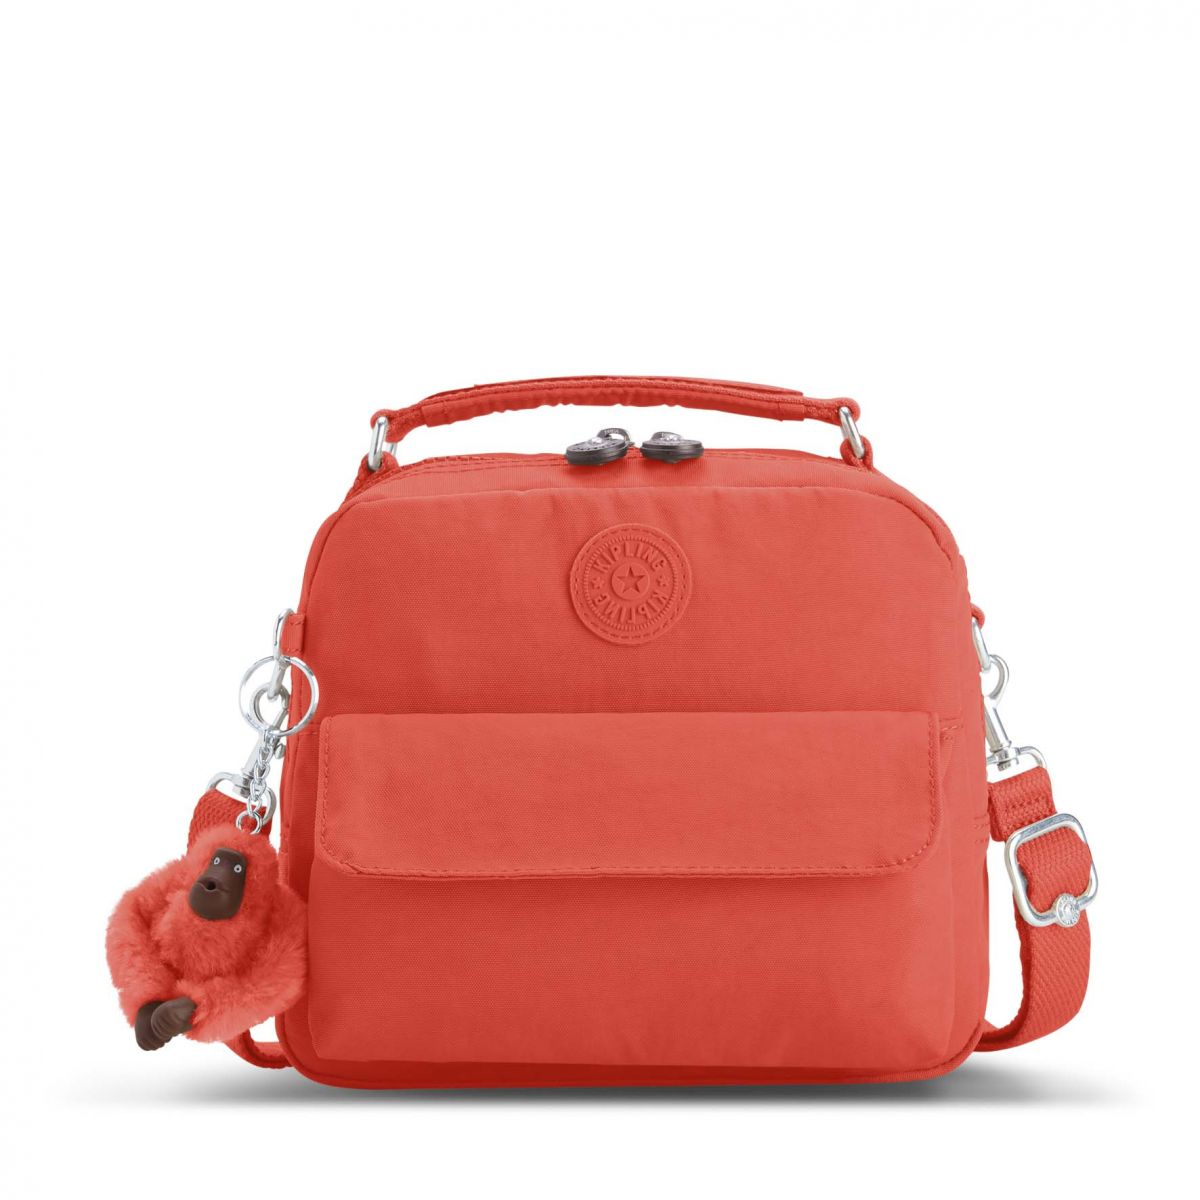 Small Cross Body Bag Convertible To